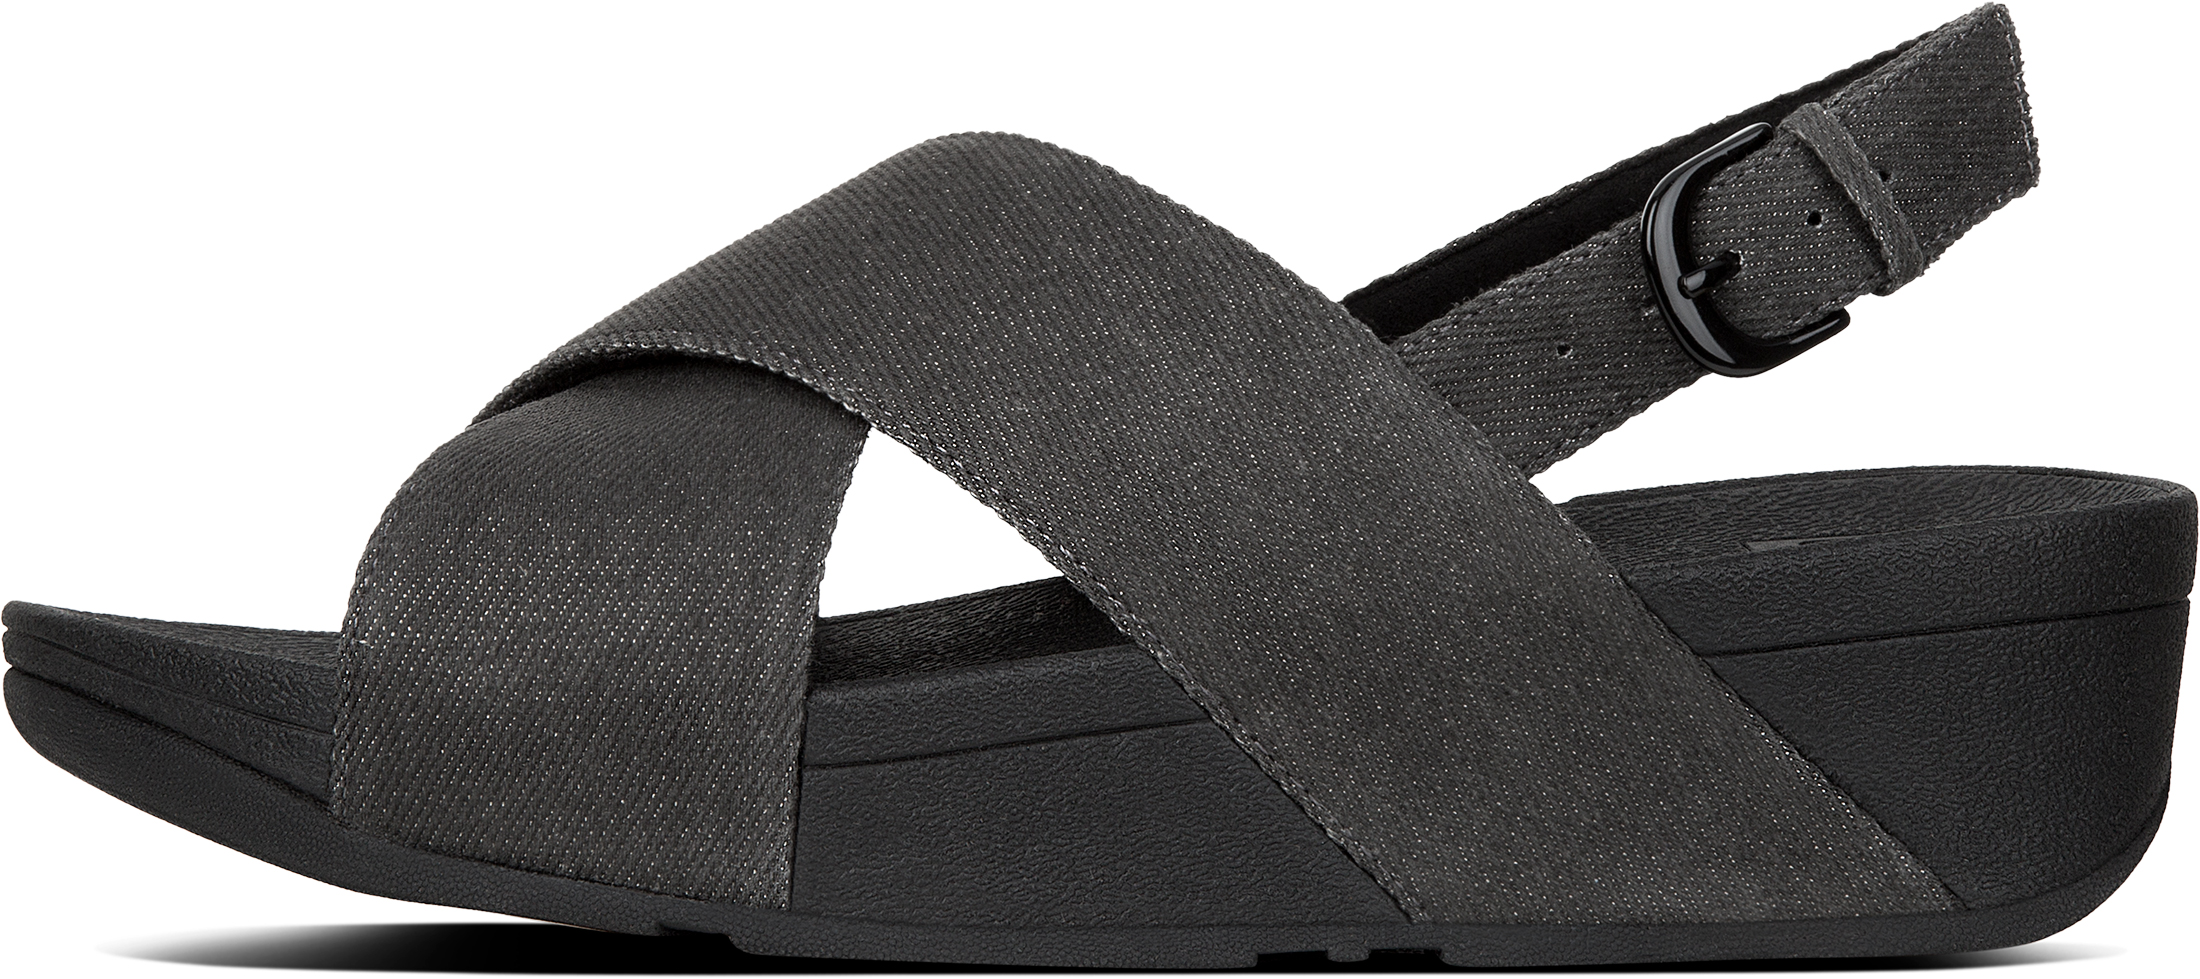 ac5e18f04e59 FitFlop Women s Lulu Cross Back-strap Sandals Shimmer Open Toe Black ...